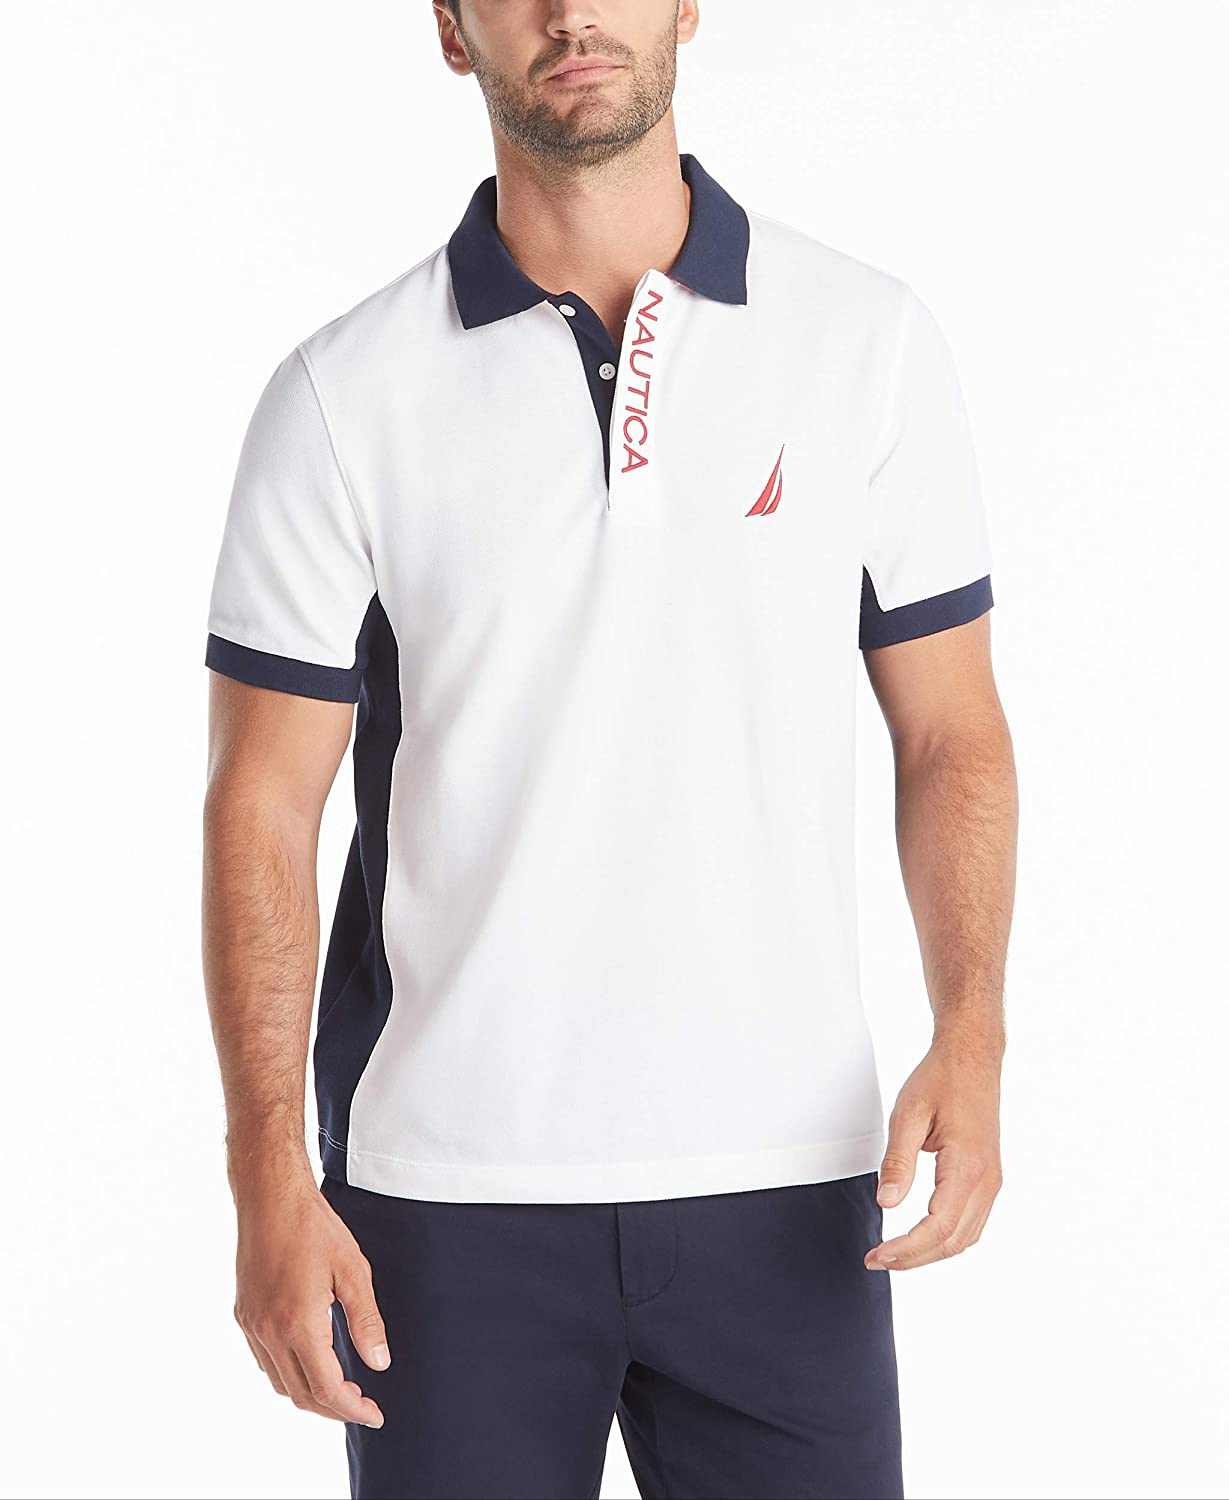 Nautica Men's Short Sleeve Color Block Performance Pique Polo Shirt